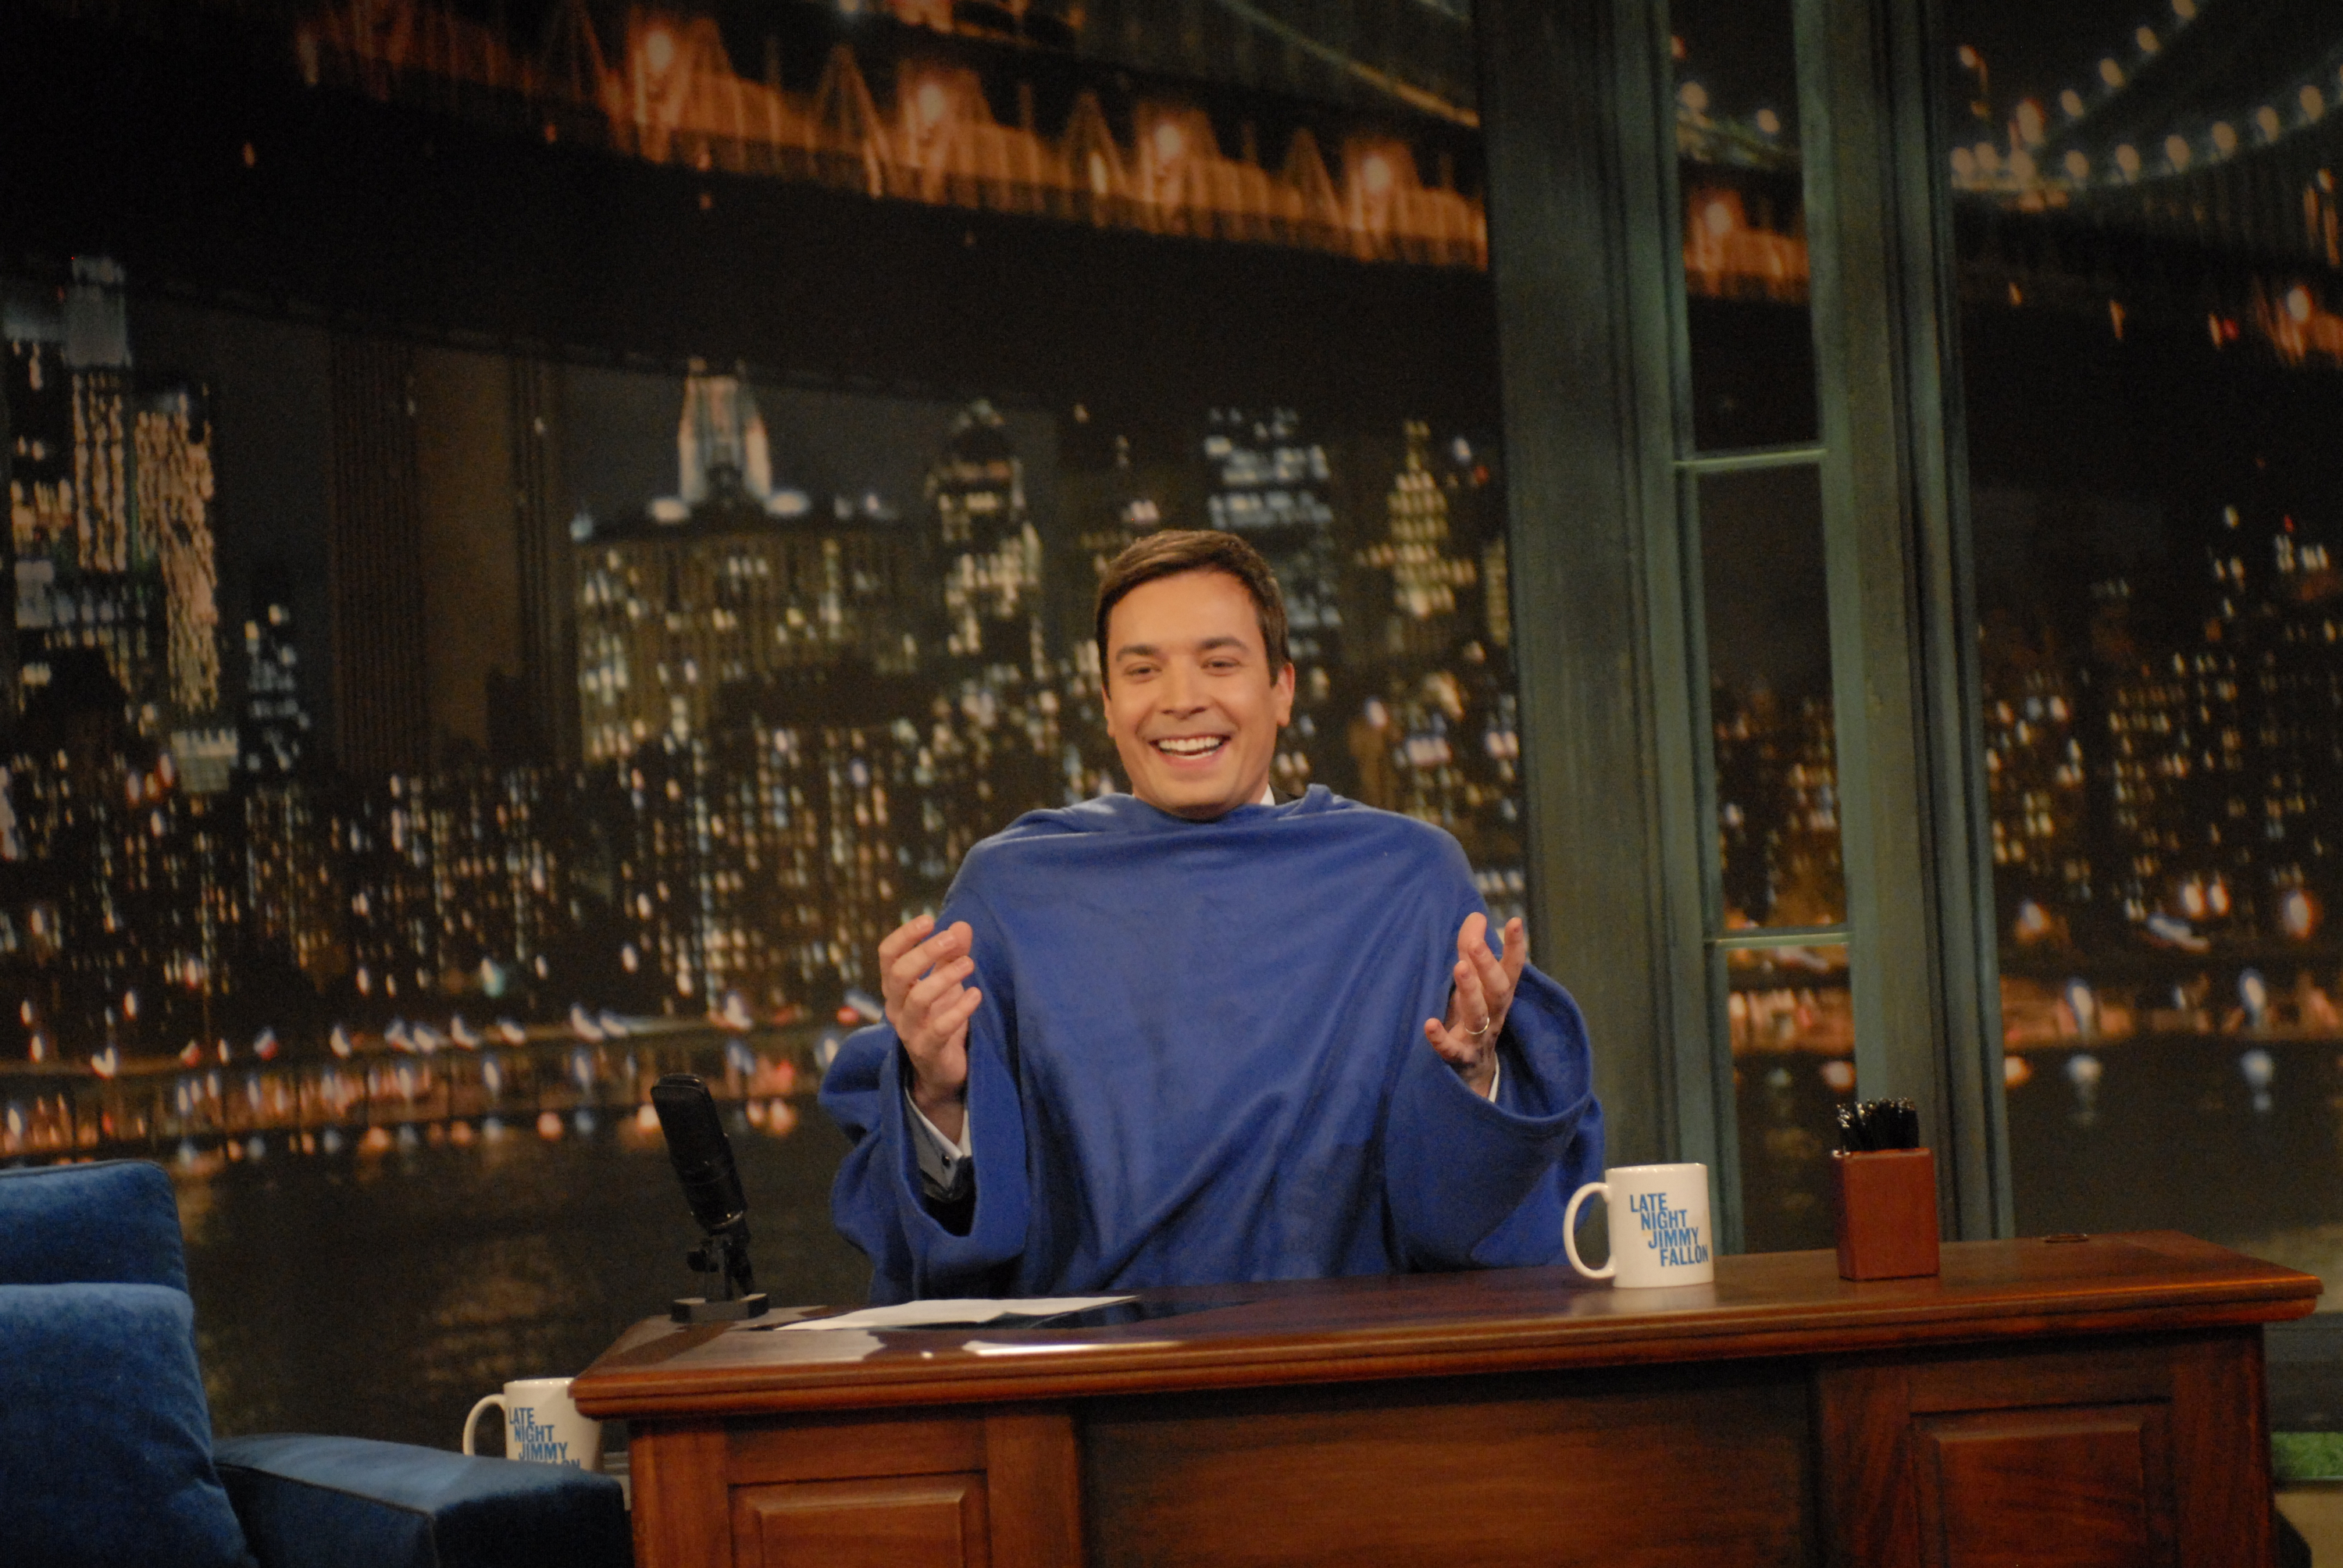 You May Be Eligible for a Refund If You Bought a Snuggie in the Past 2 Decades